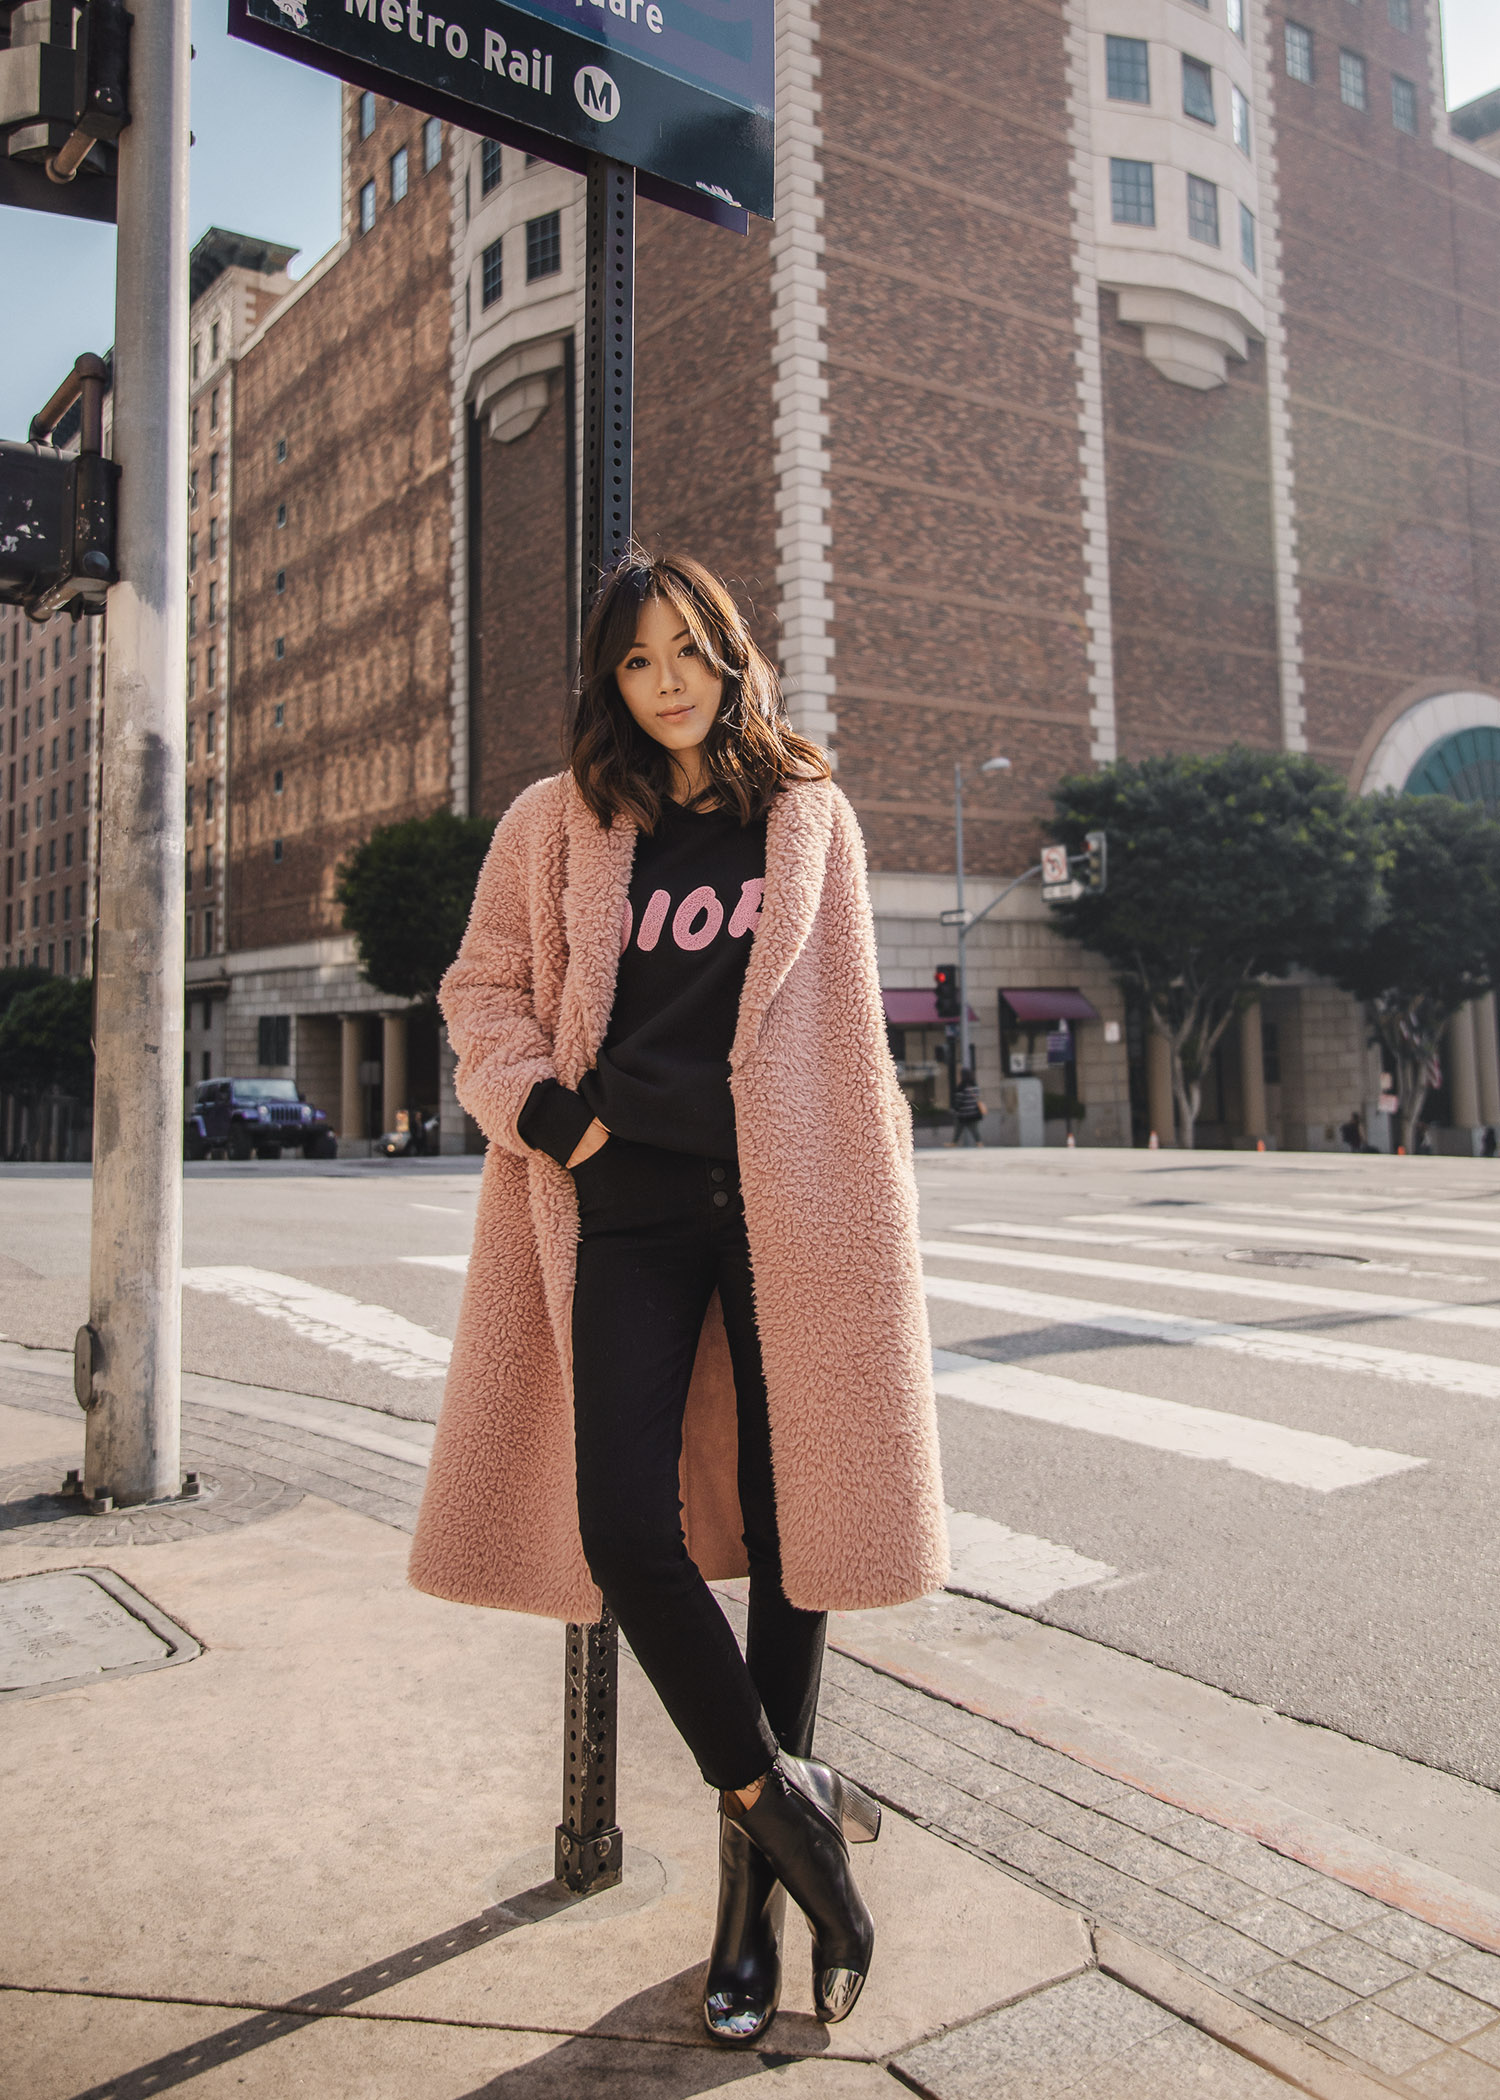 Jenny Tsang of Tsangtastic styling Dior x Kaws cotton sweatshirt Dior Summer 19 capsule collection in collaboration with KAWS by Kim Jones